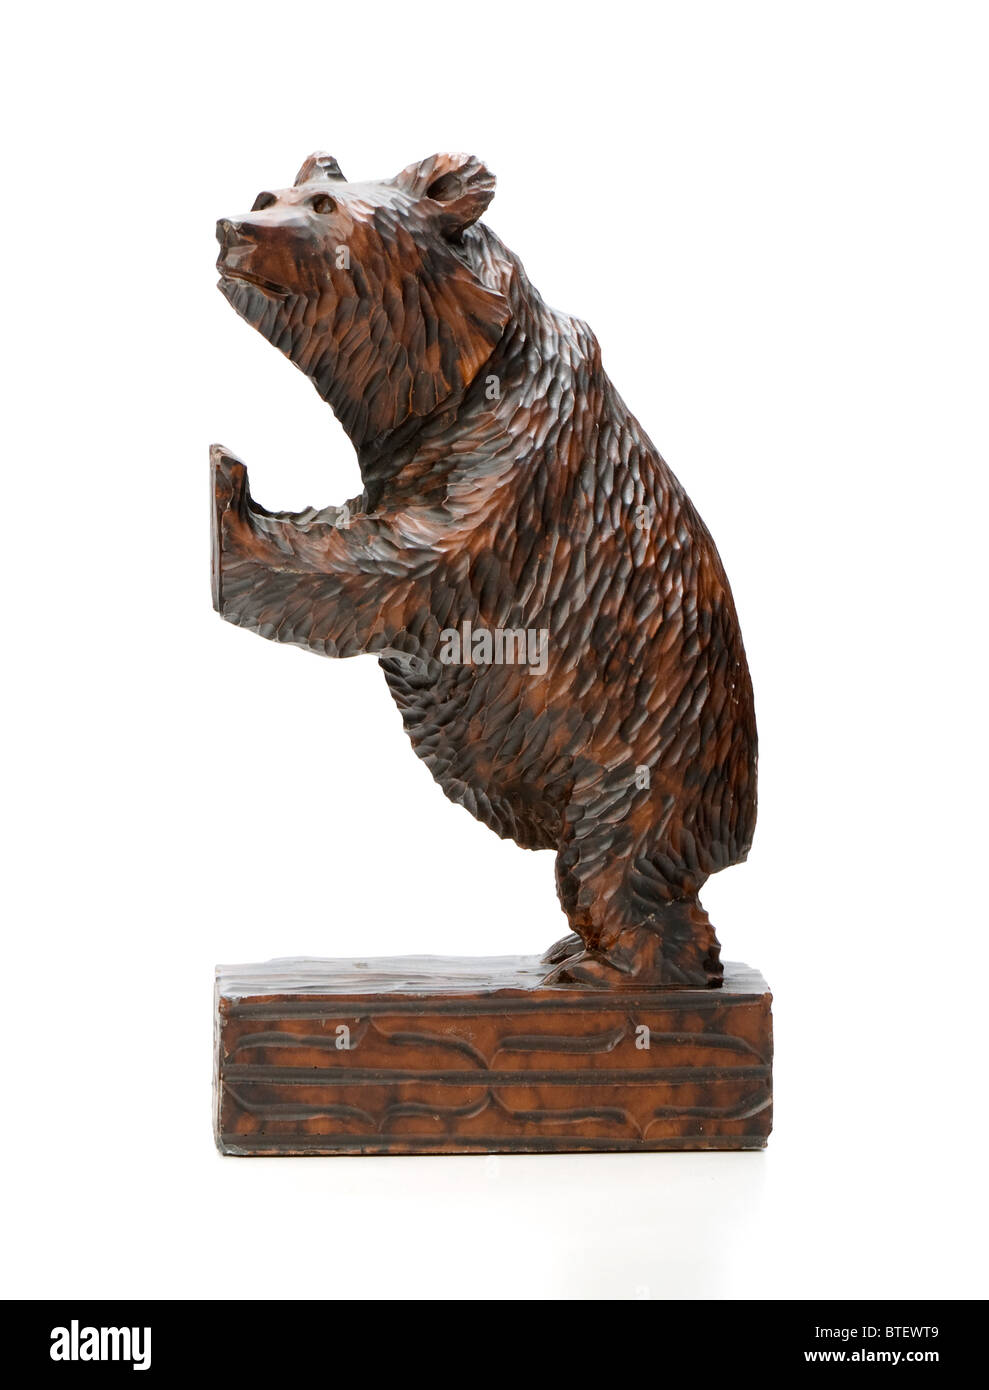 Best Carved Wooden Bear Stock Photos & Carved Wooden Bear Stock Images  IQ47